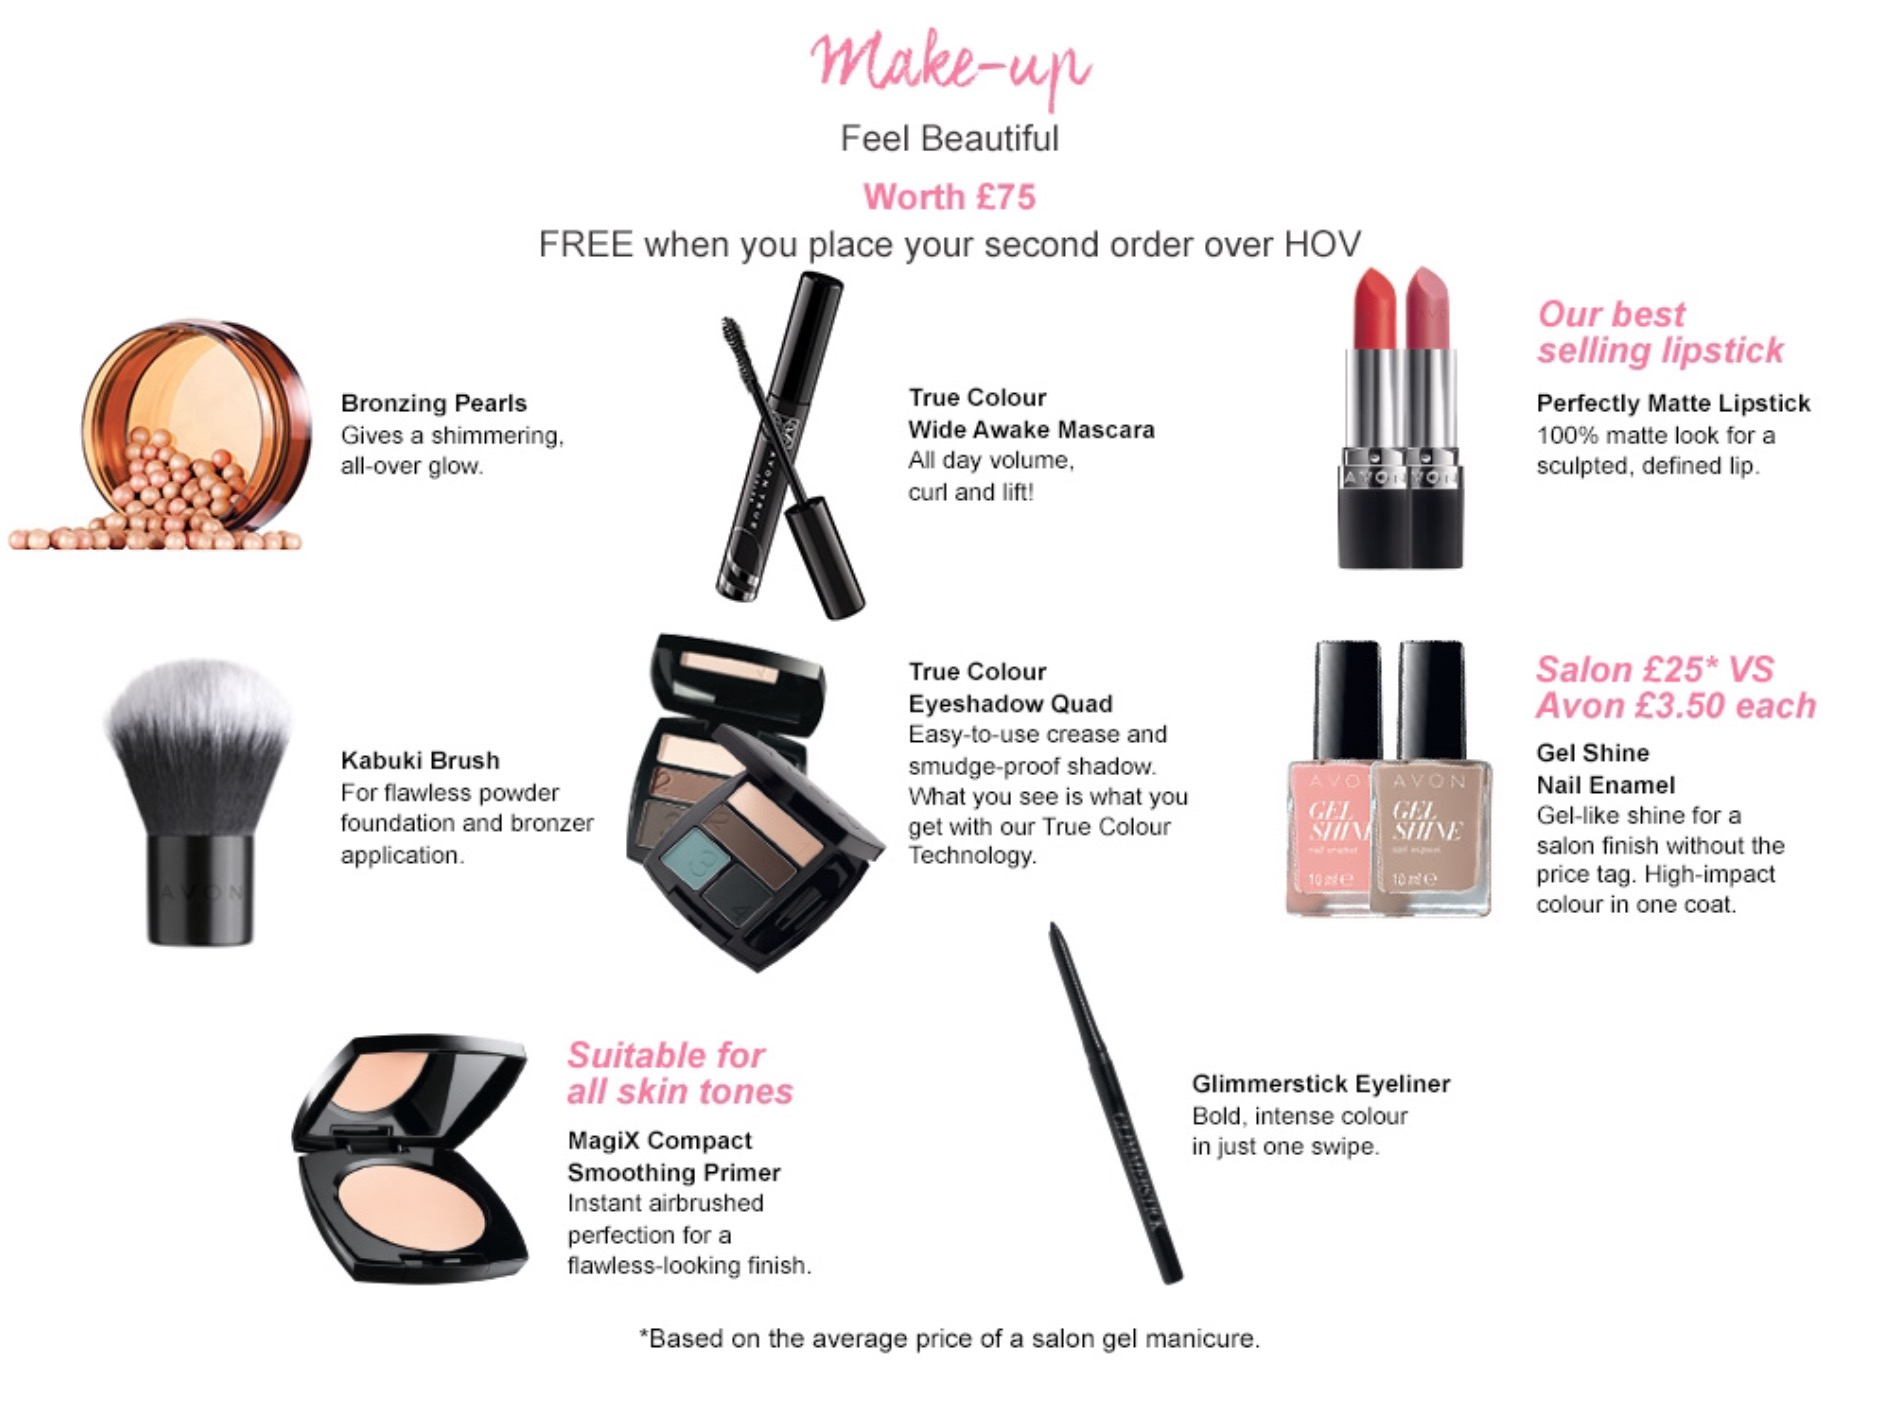 Avon £300 Product Pack